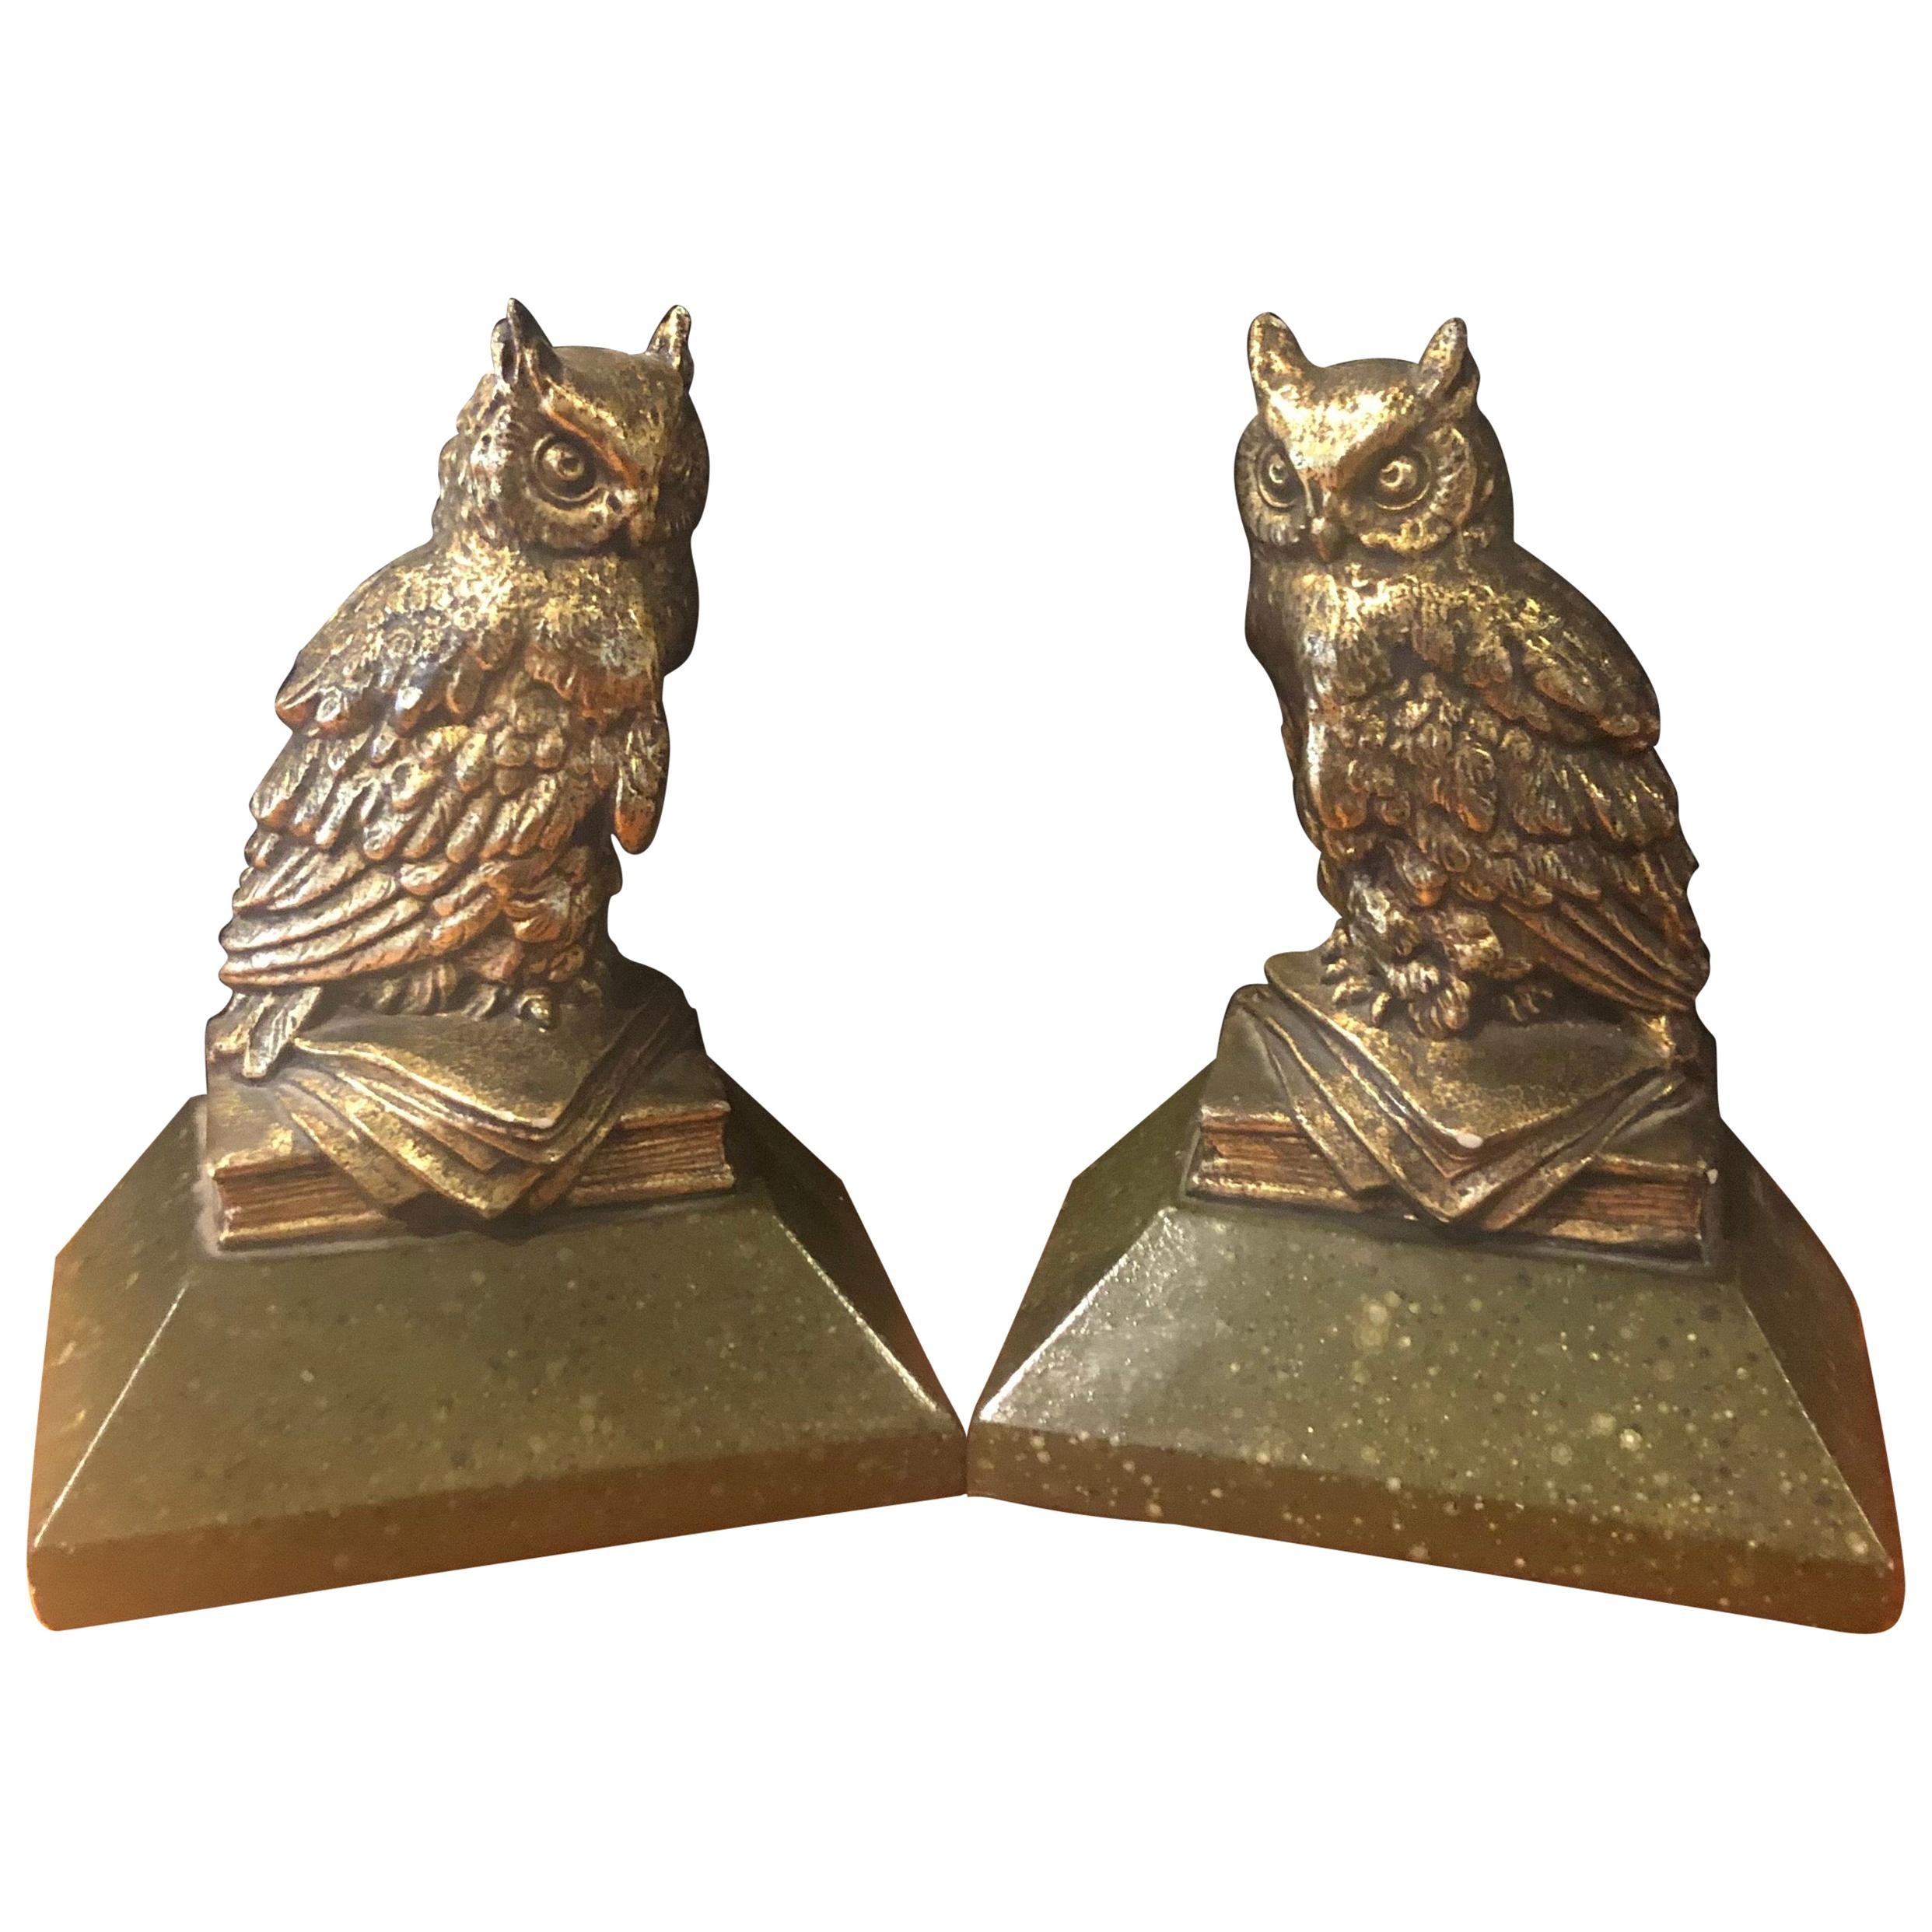 Pair of Hollywood Regency Gold Gilt Owl Bookends by Borghese